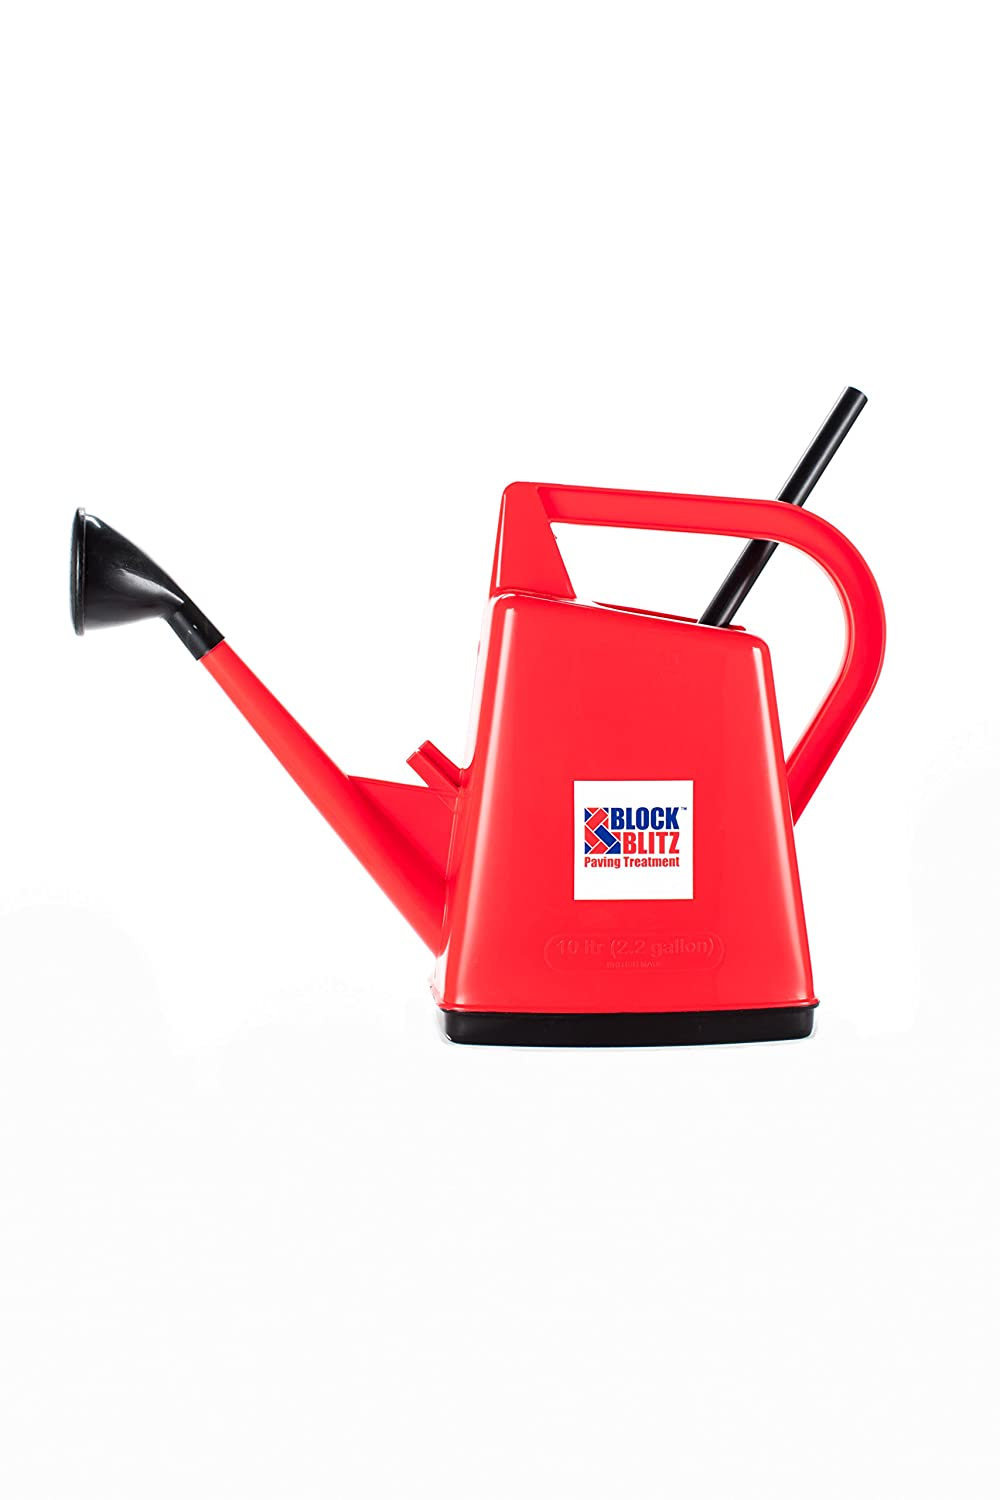 Block Blitz Watering Can with Mixing Stick Block Blitz Ltd BBWC01